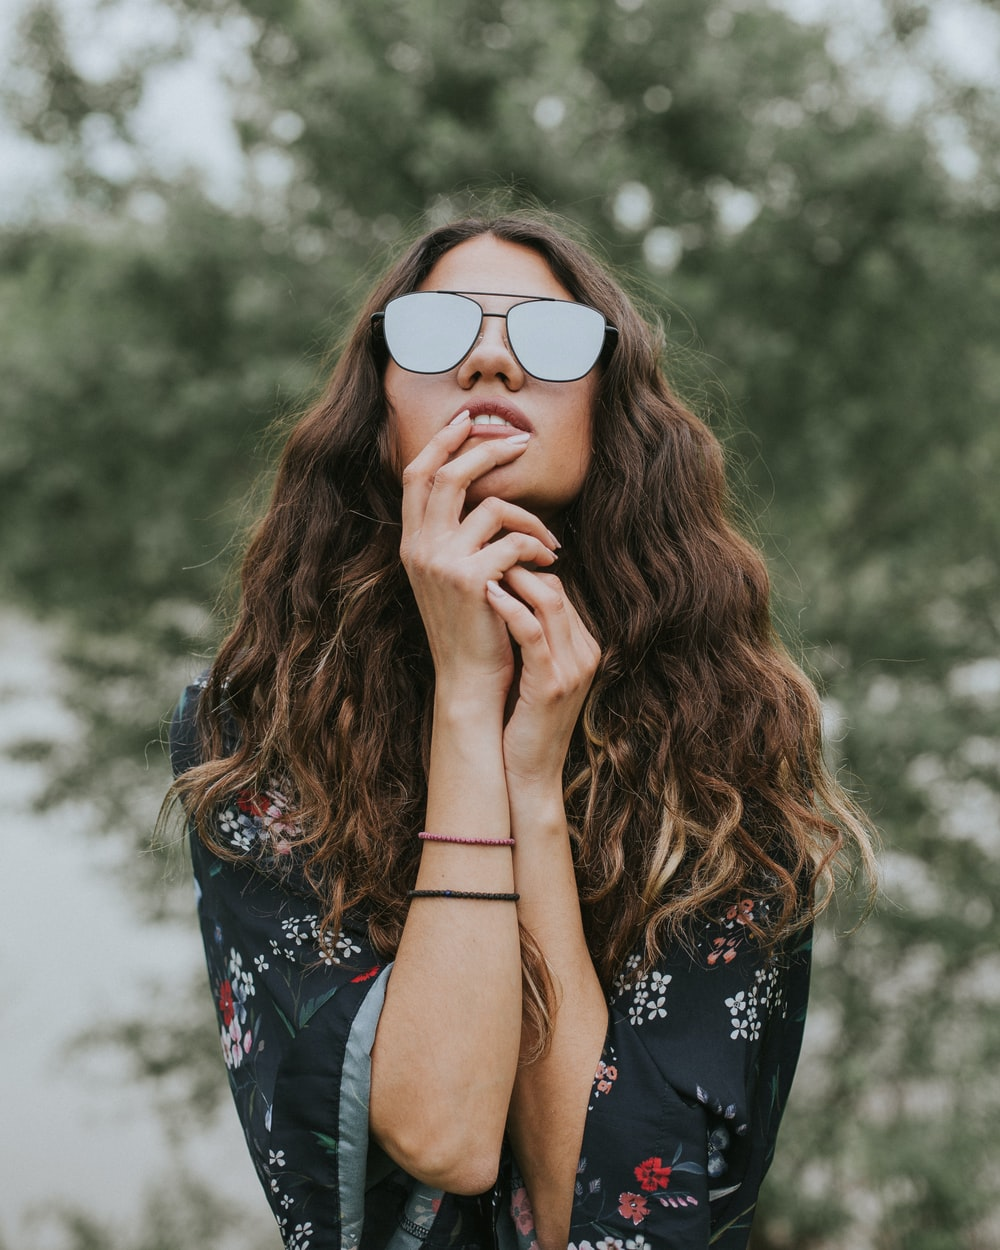 portrait photo of woman wearing sunglasses